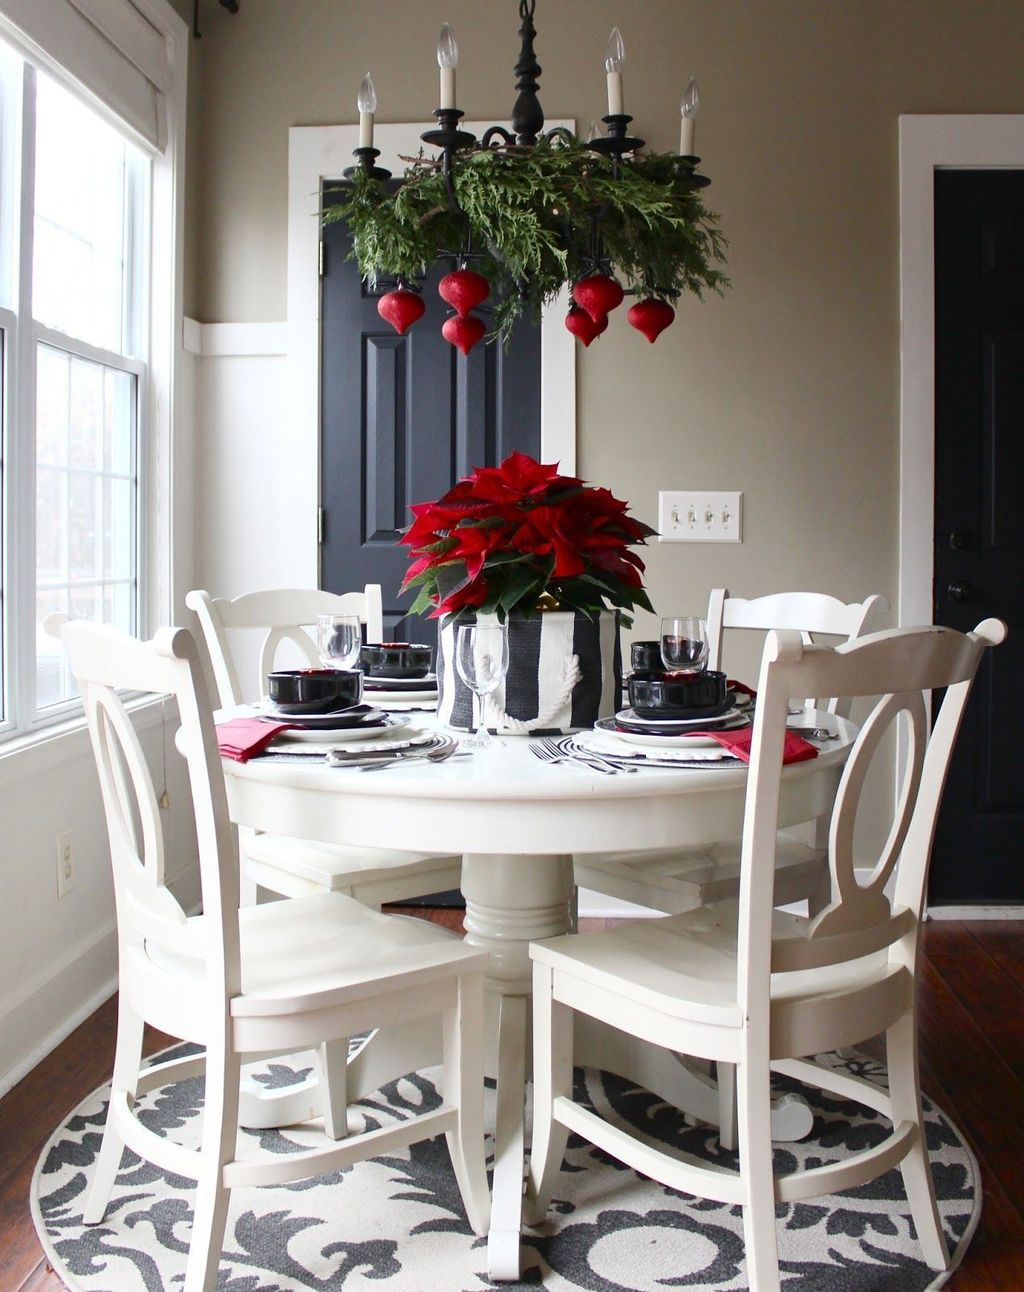 Popular Minimalist Winter Decor Ideas You Should Try 13